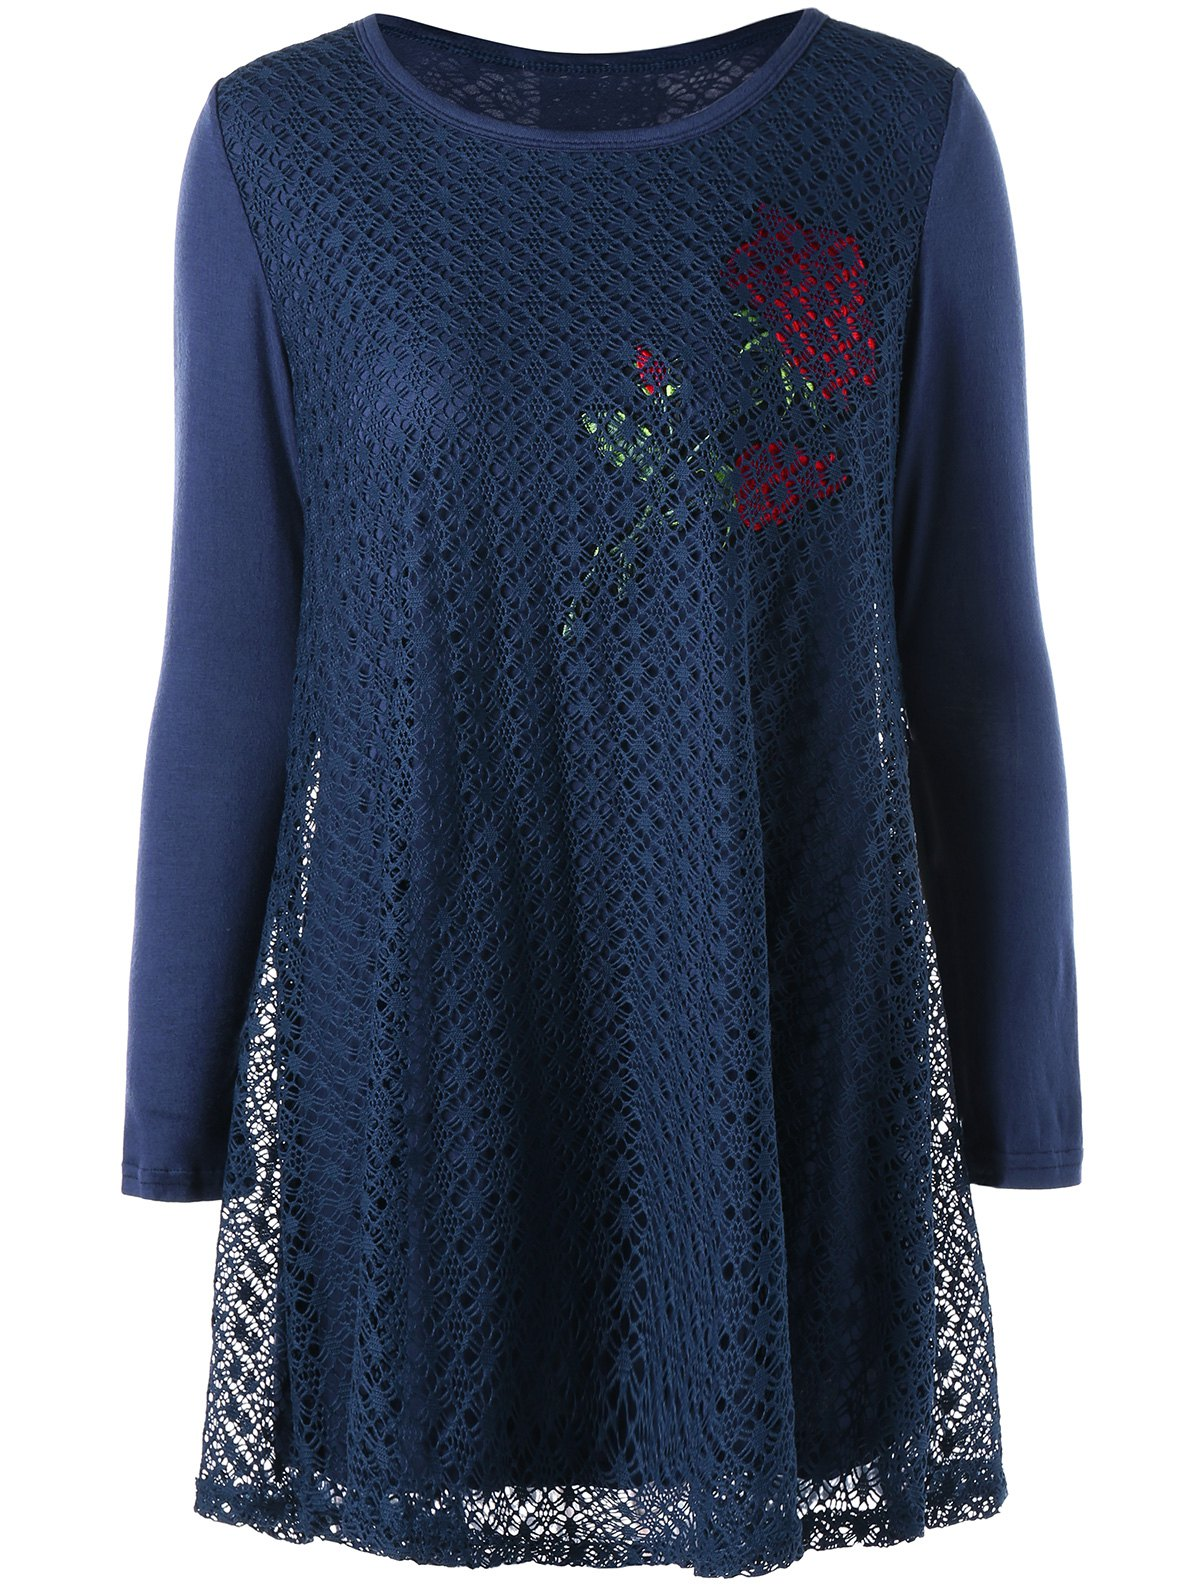 Plus Size Rose Pattern Openwork Tunic Blouse - CADETBLUE 5XL